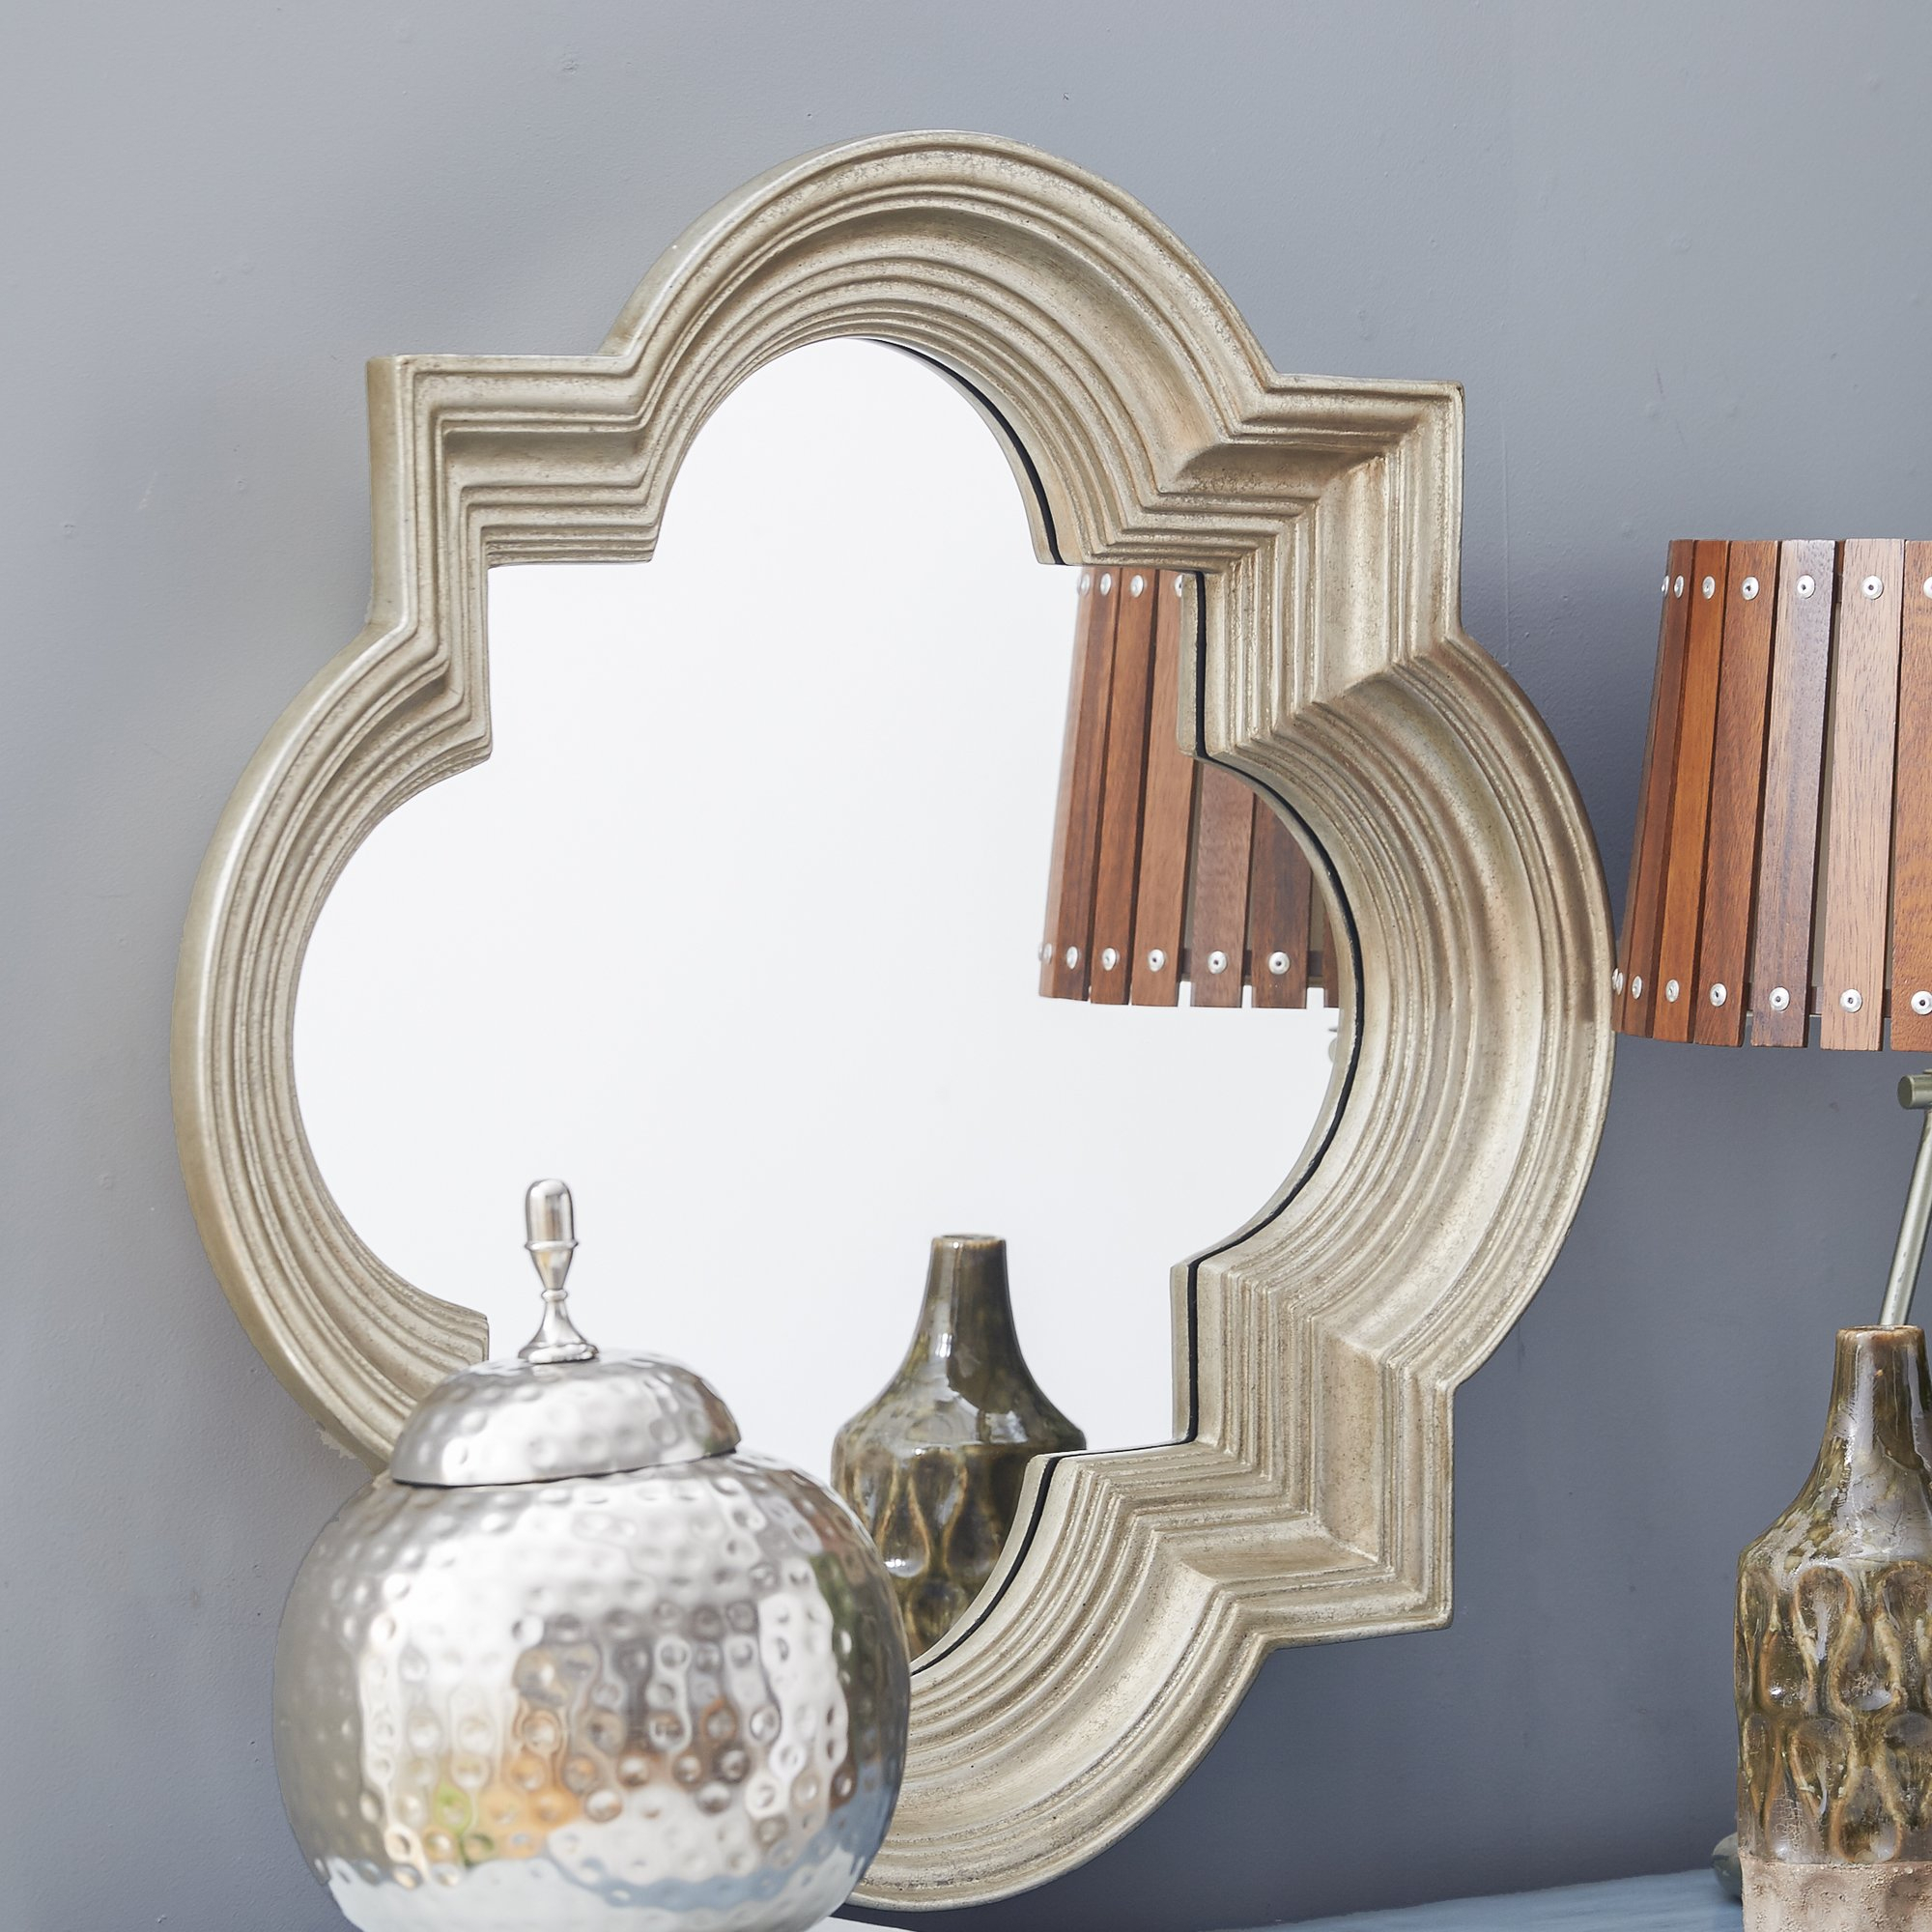 Decorative Wall Mirrors Wade Logan Decorative Wall Mirror in Boyers Wall Mirrors (Image 13 of 30)